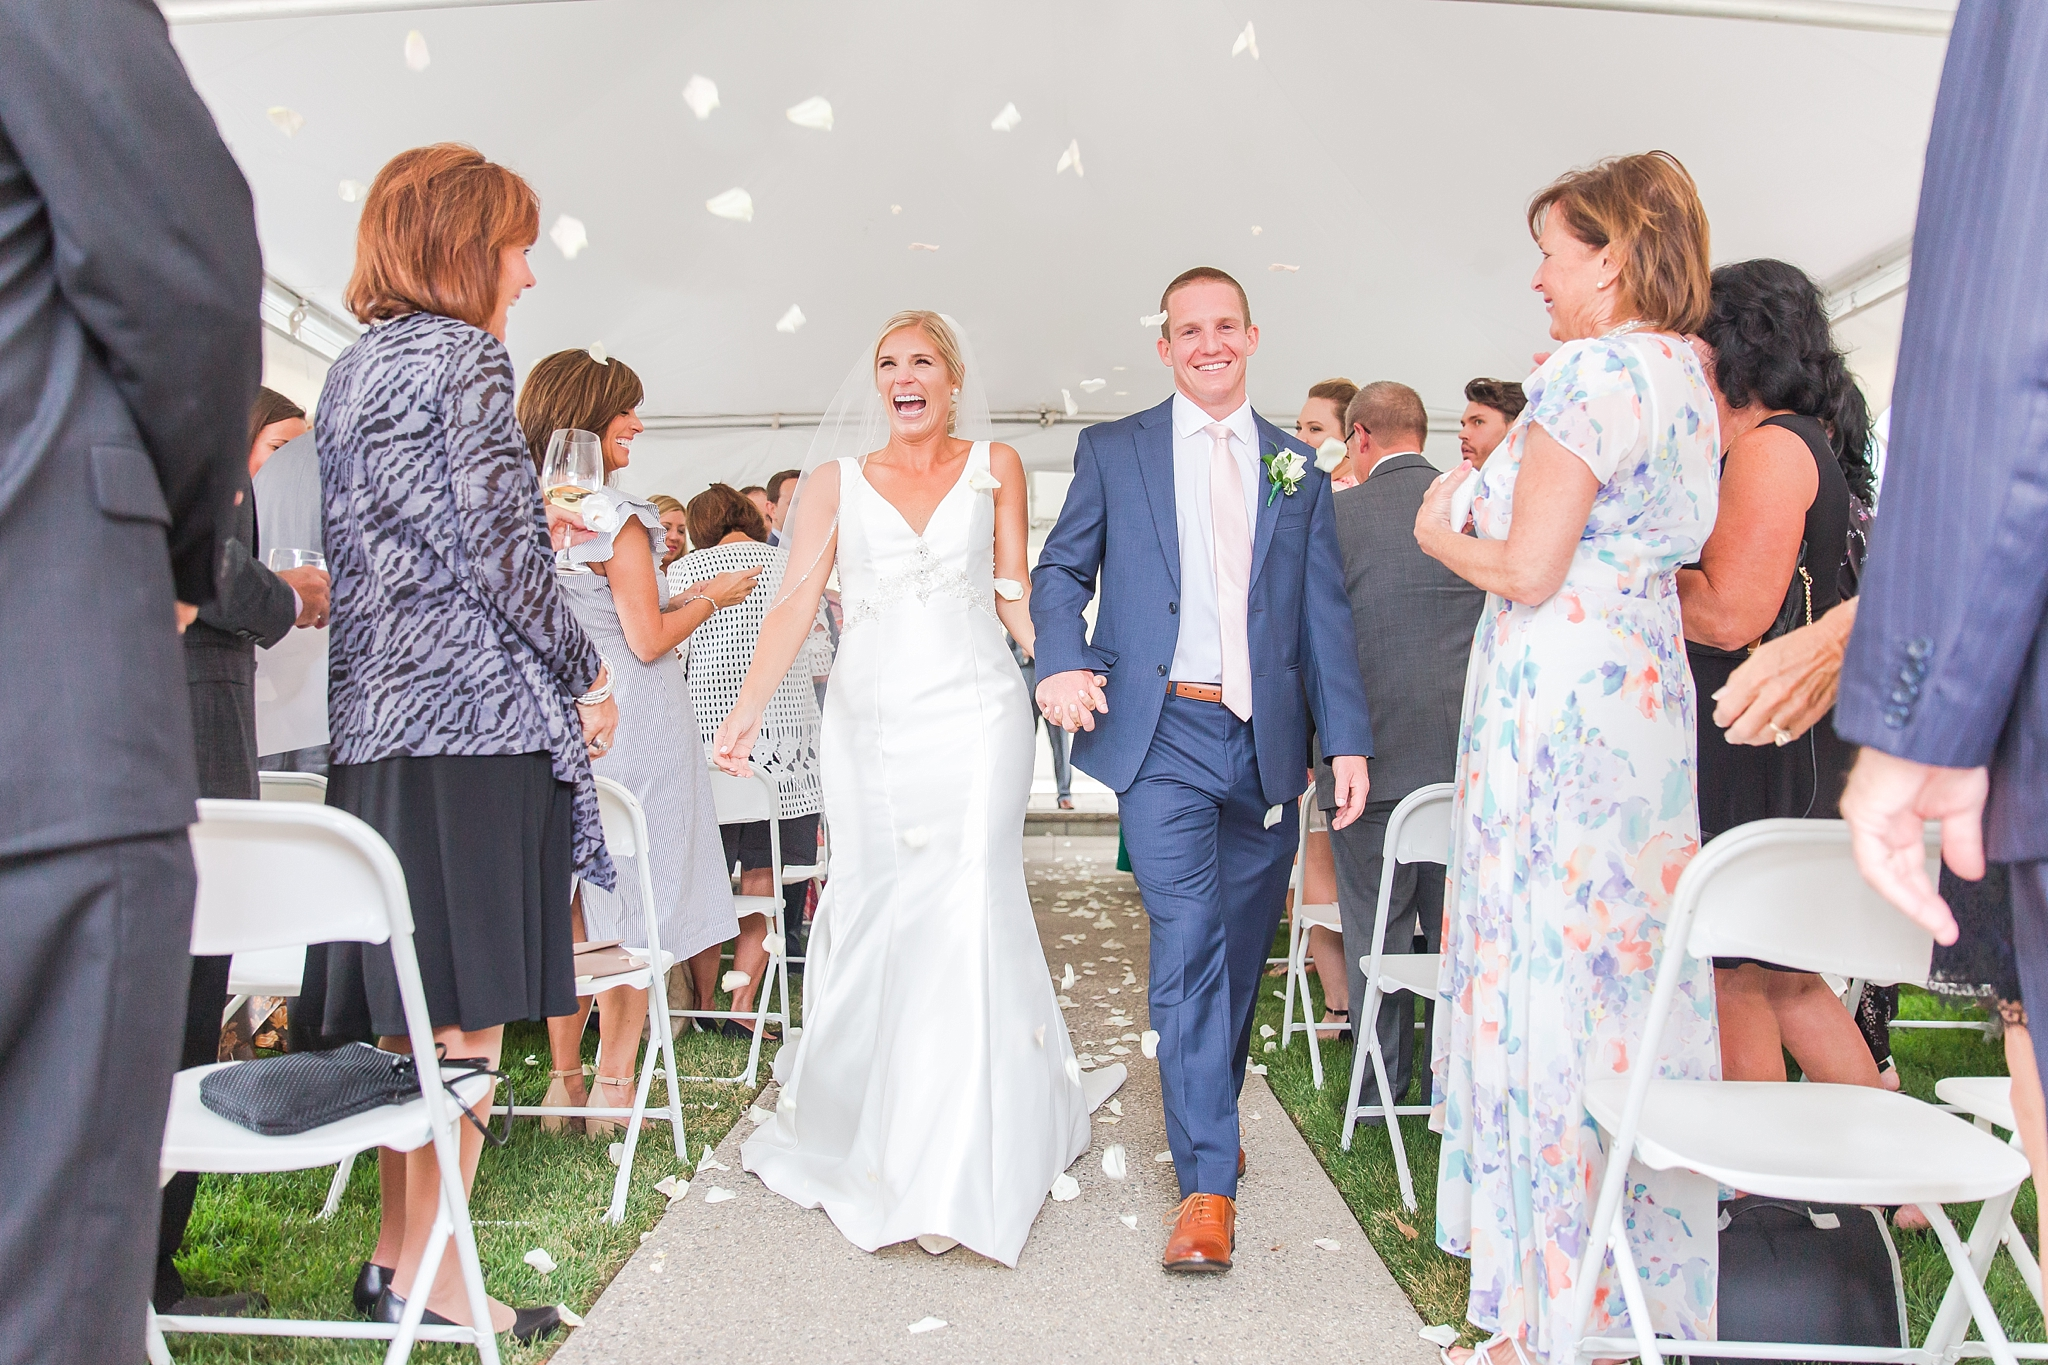 casually-chic-modern-wedding-photos-at-the-chapman-house-in-rochester-michigan-by-courtney-carolyn-photography_0045.jpg